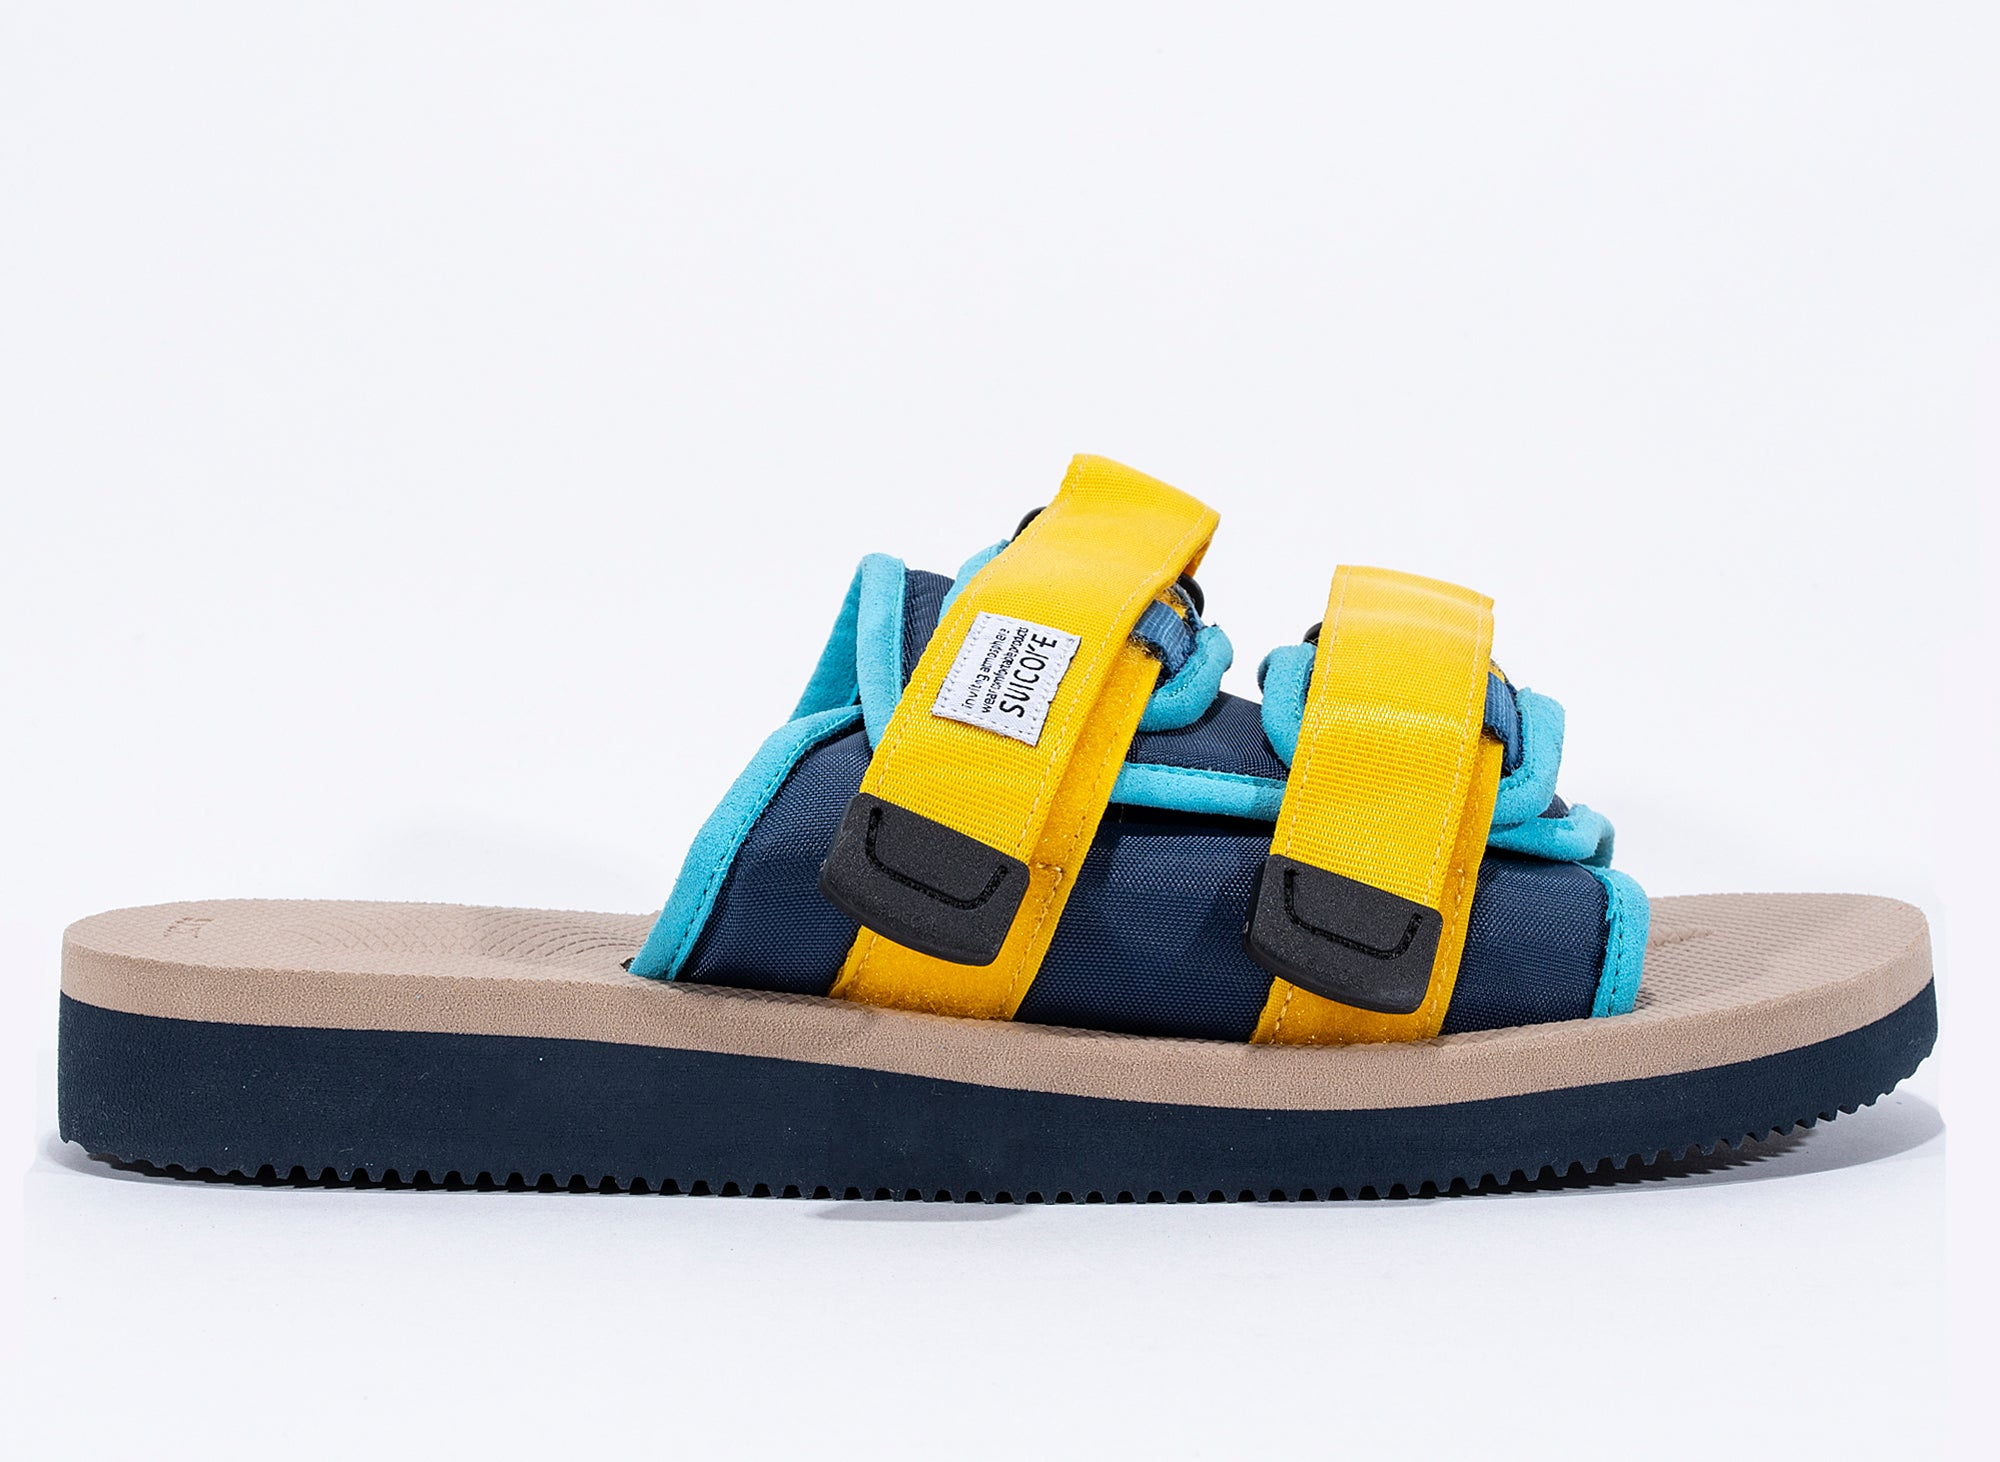 Suicoke Moto-Cab Sandals in Navy